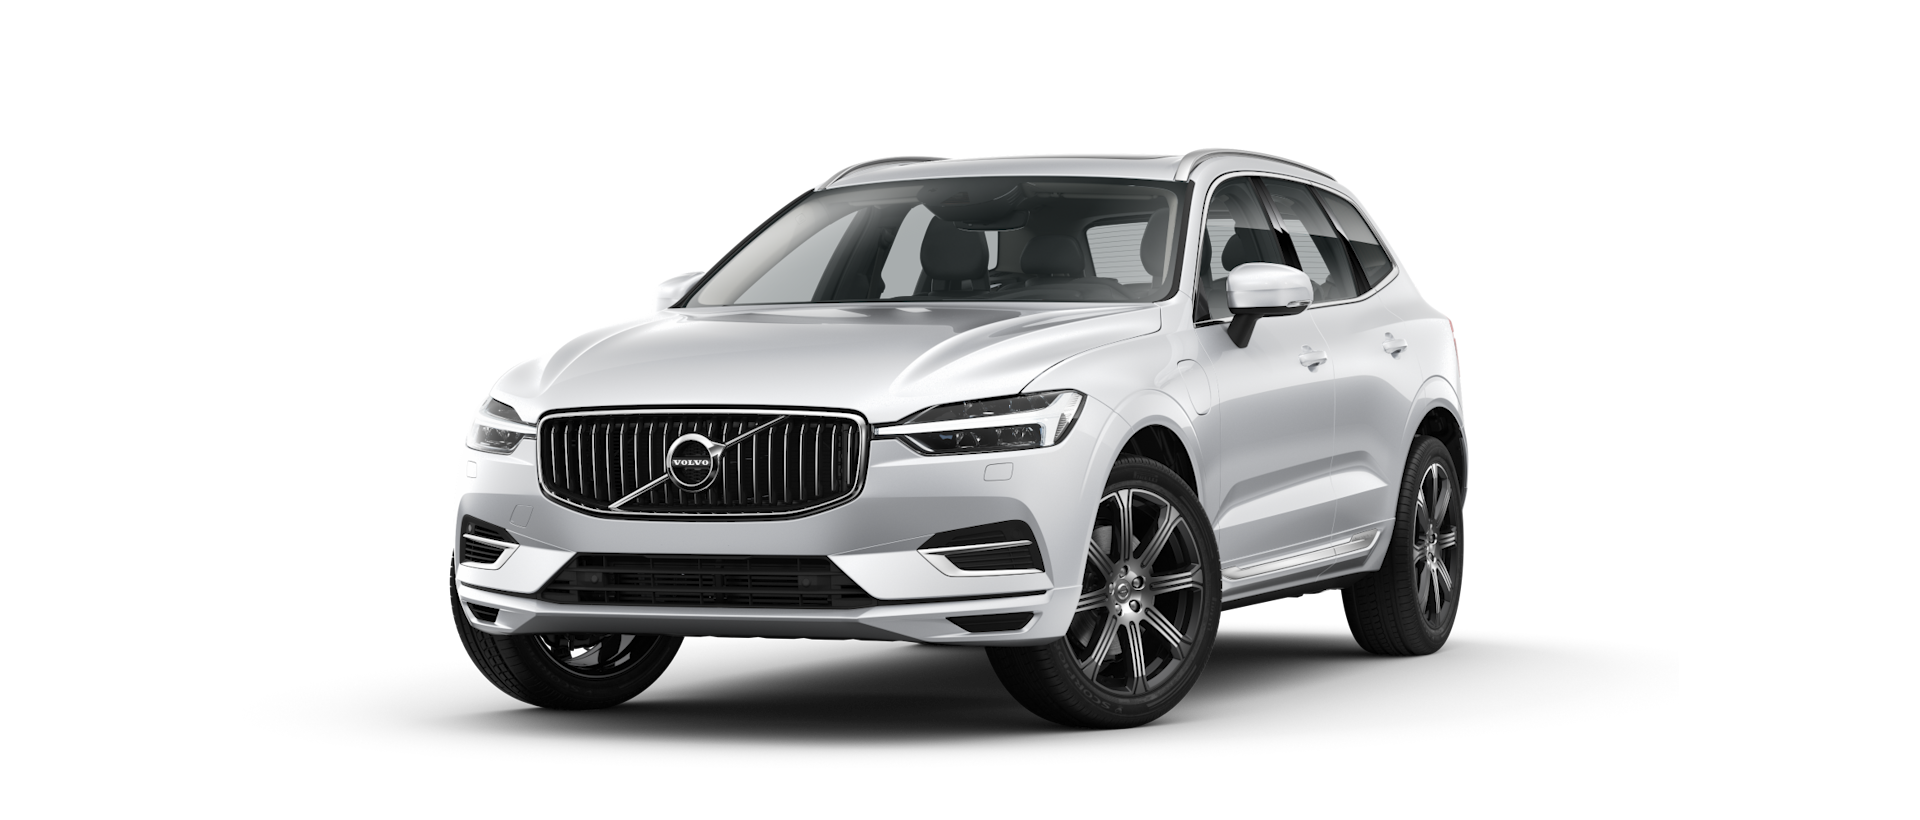 Volvo XC60 T8 Twin Engine voiture SUV hybride rechargeable